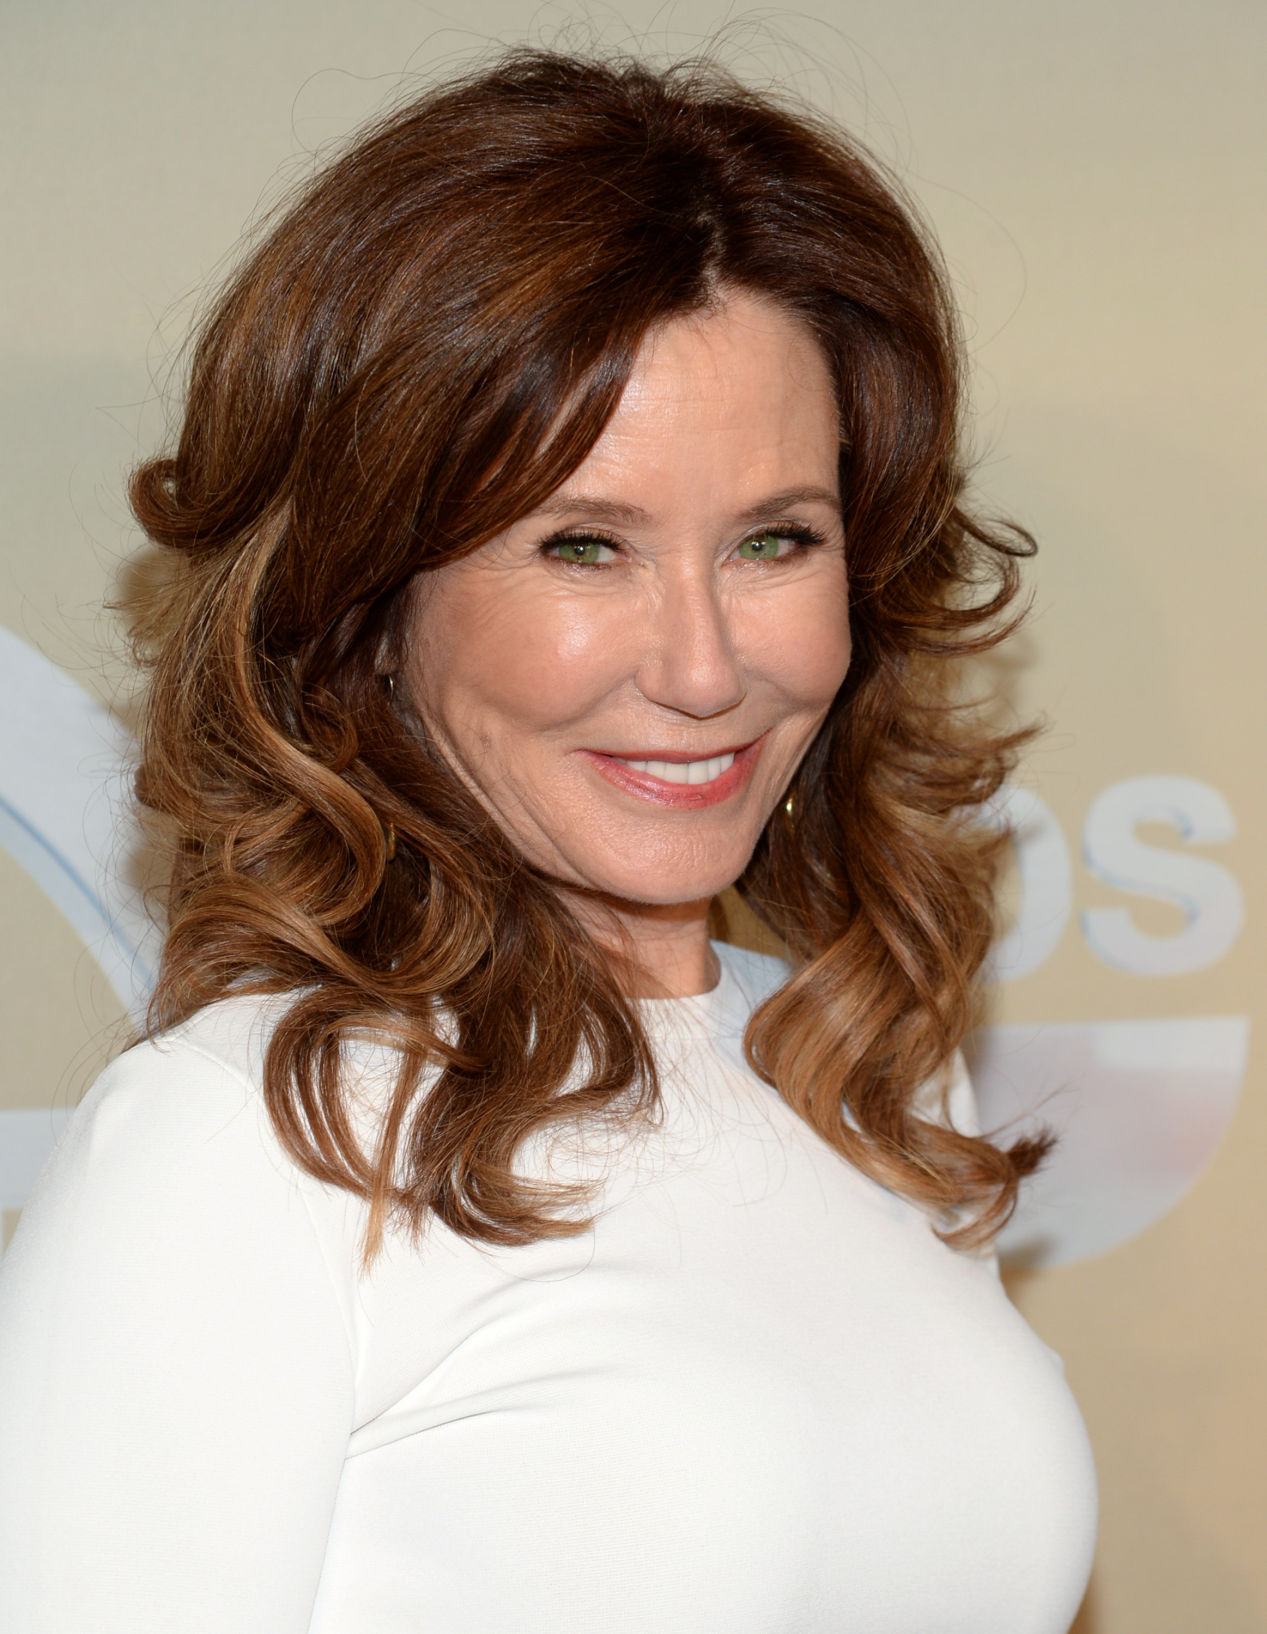 Mary McDonnell nude (13 photos), Sexy, Paparazzi, Selfie, cameltoe 2006